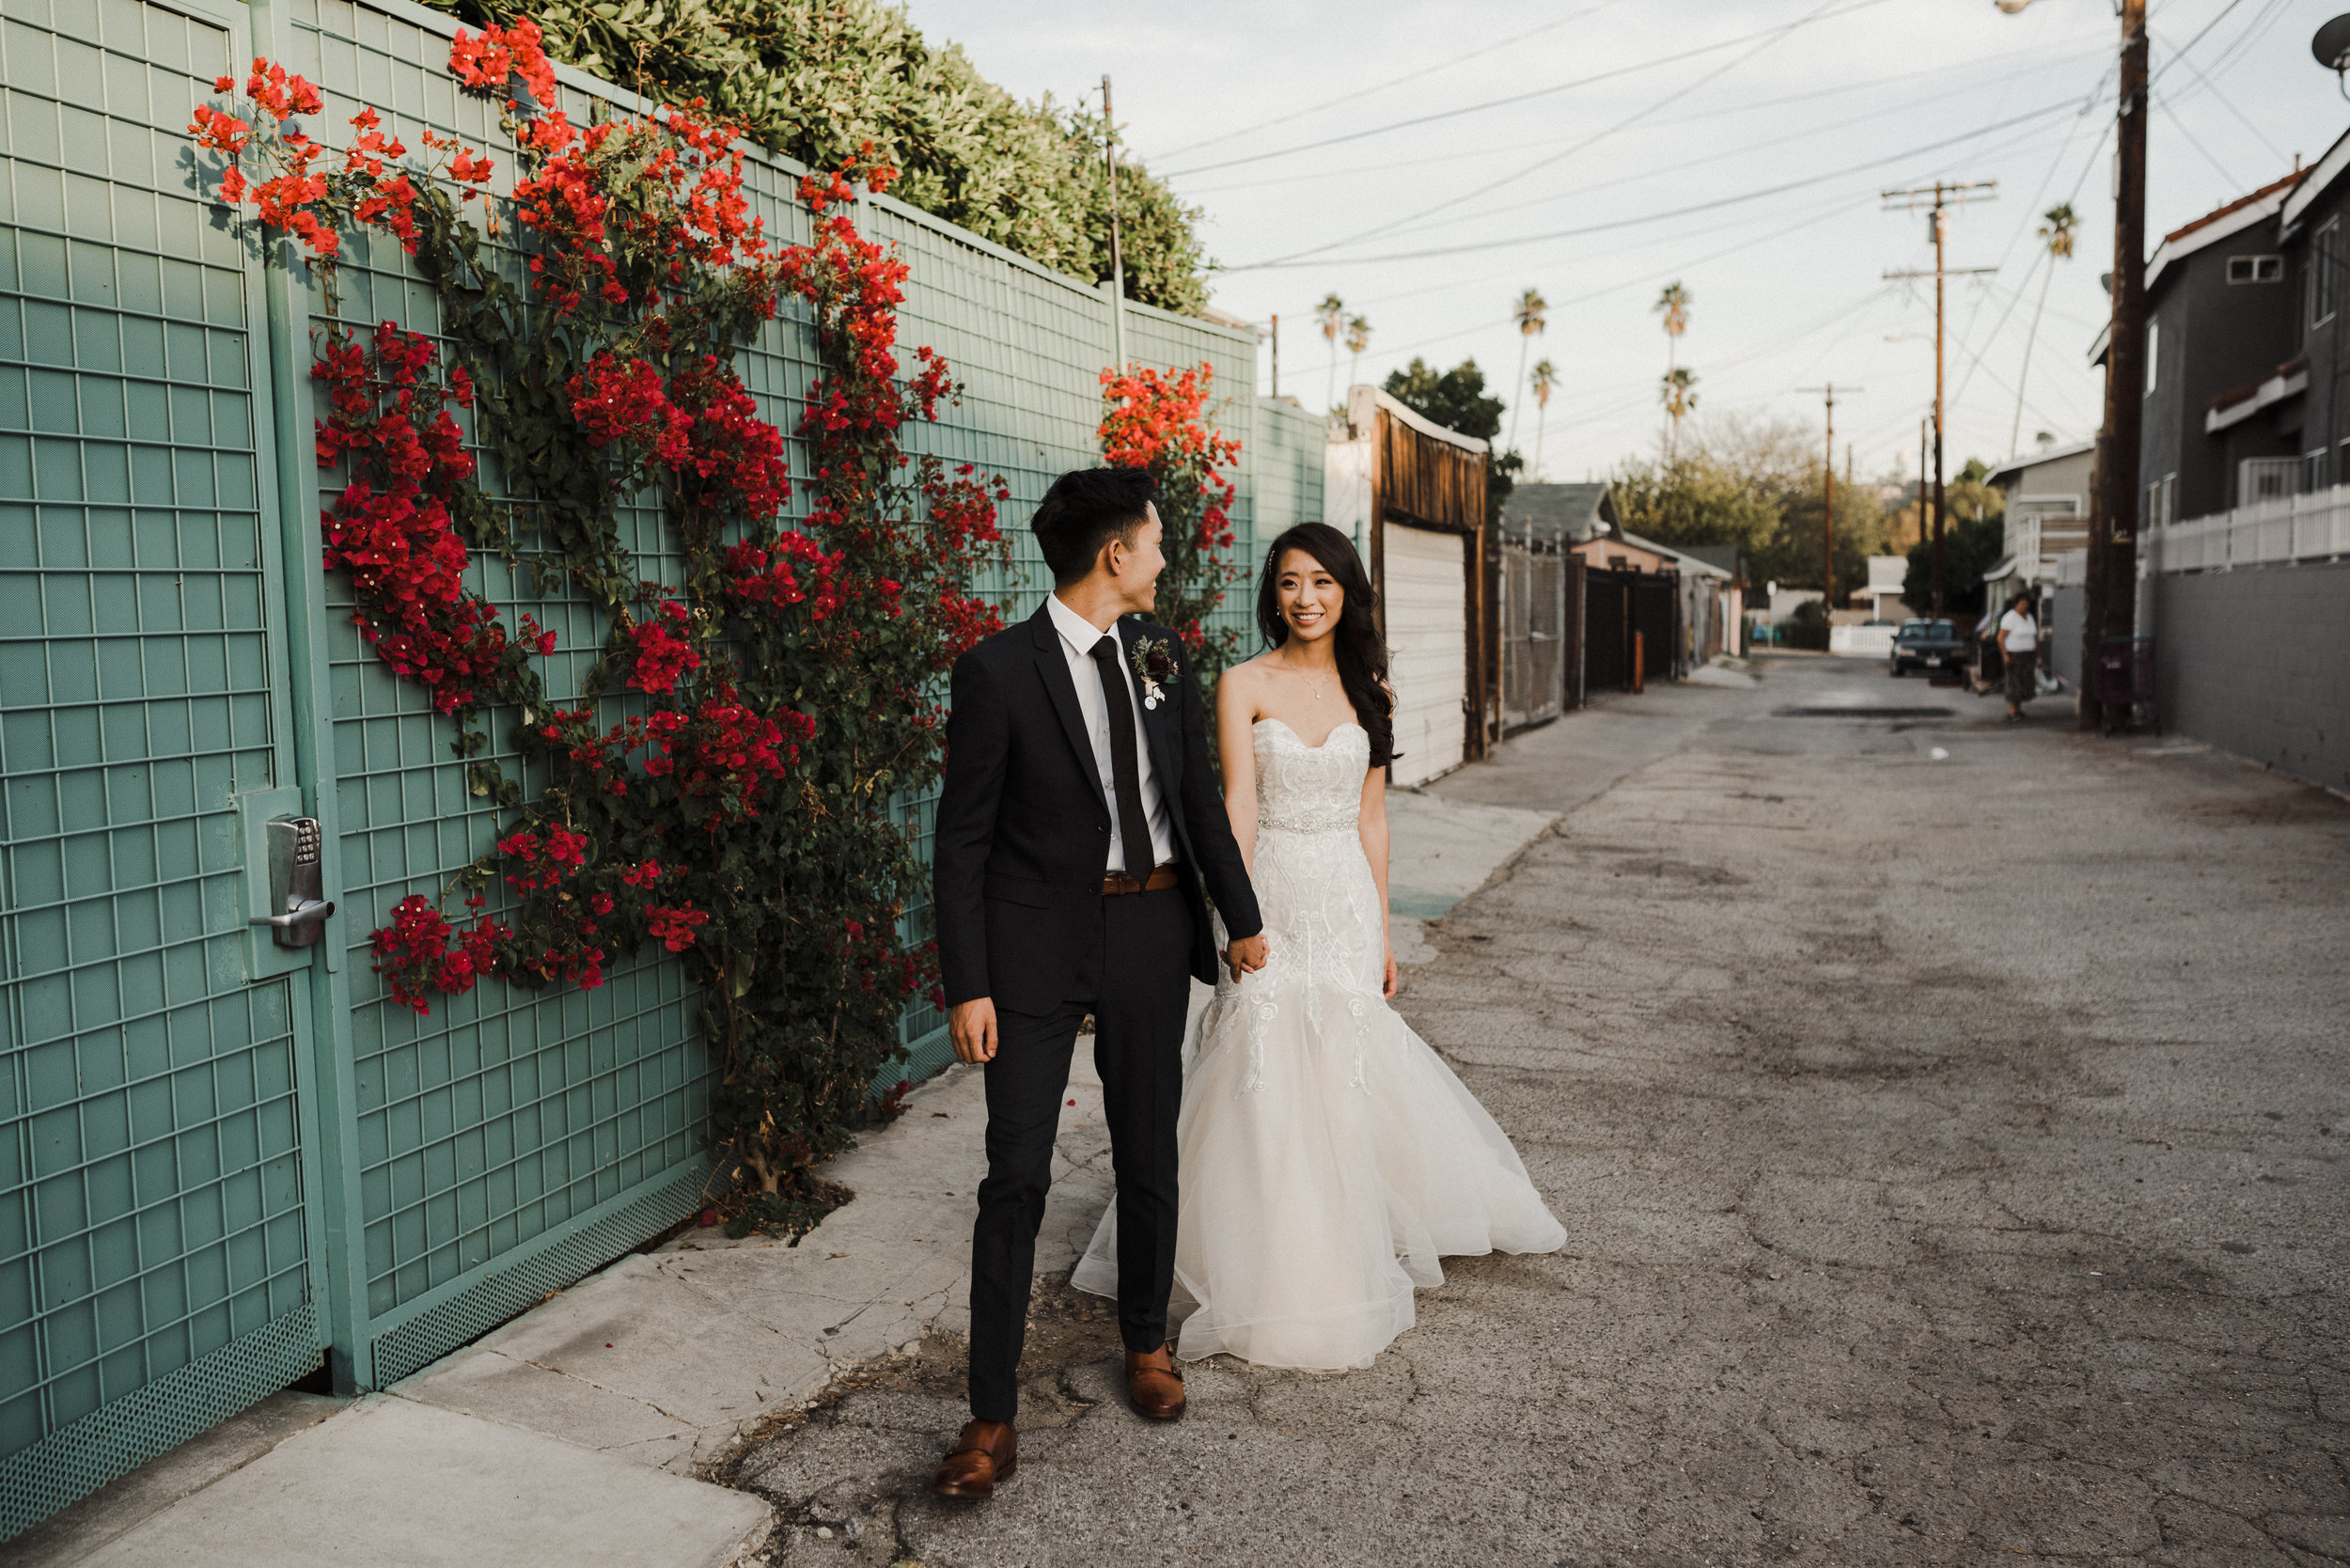 Danny & Kristy - The Ruby Street - Los Angeles, CA